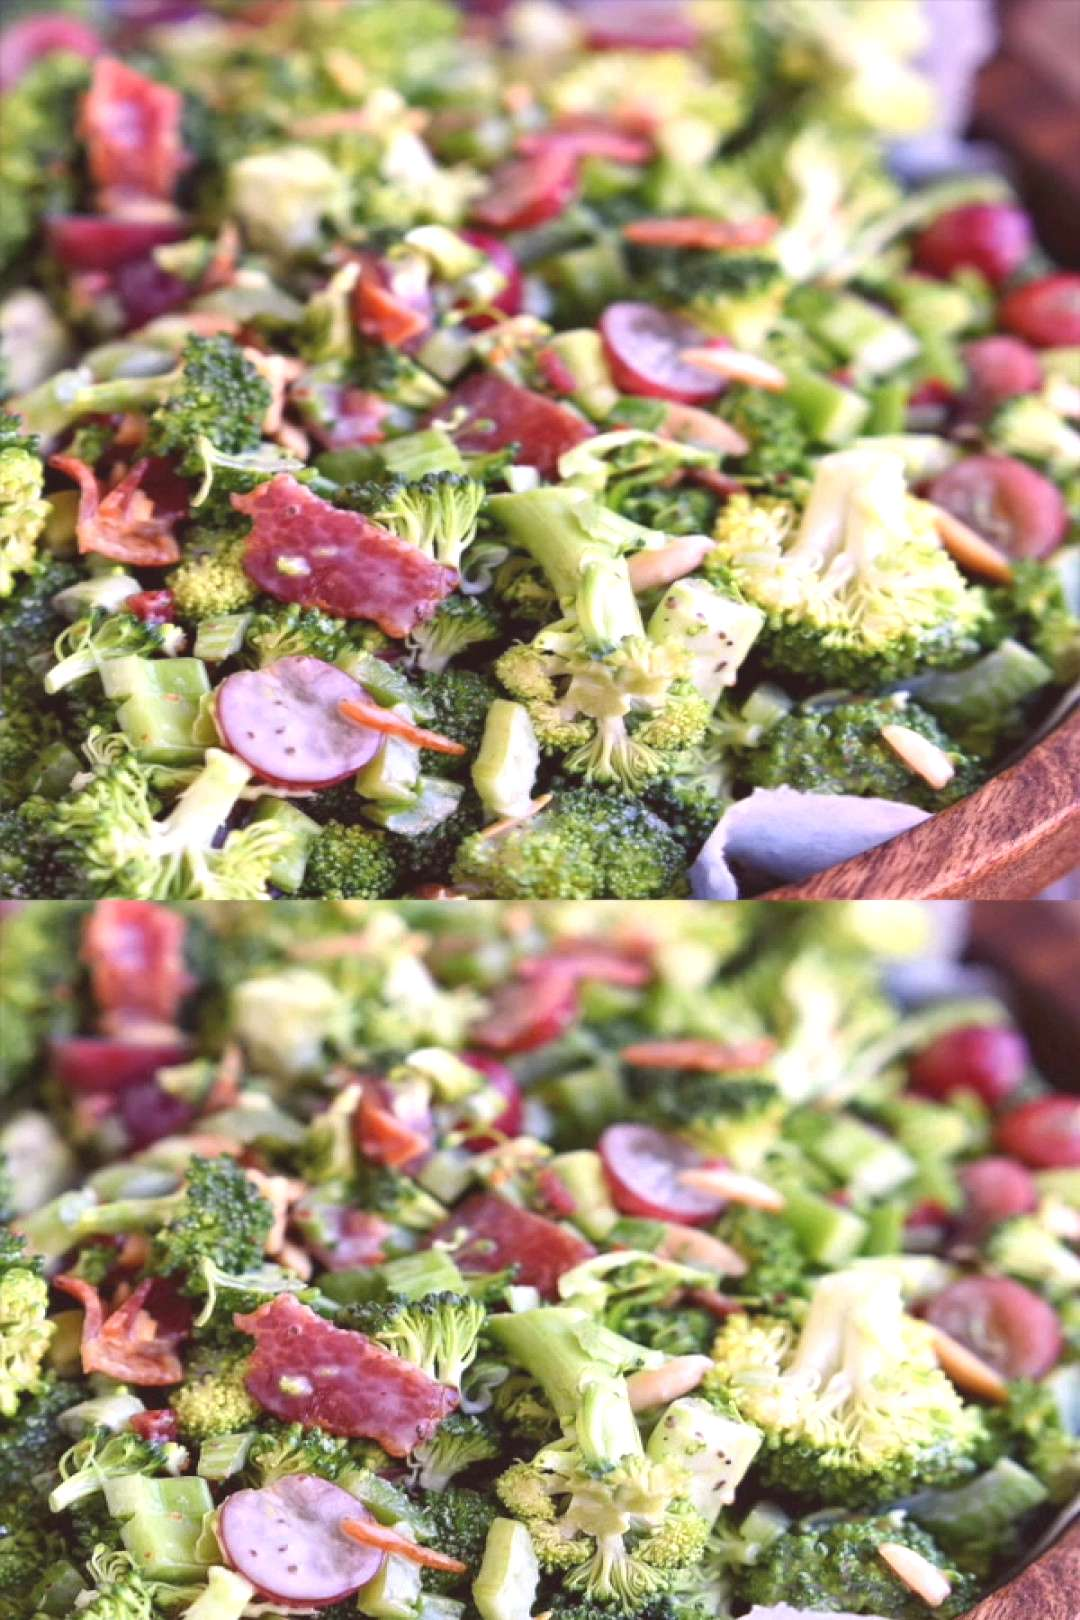 Best Ever Broccoli Salad recipe is bursting with flavor! Packed full of broccoli, bacon, grapes, al